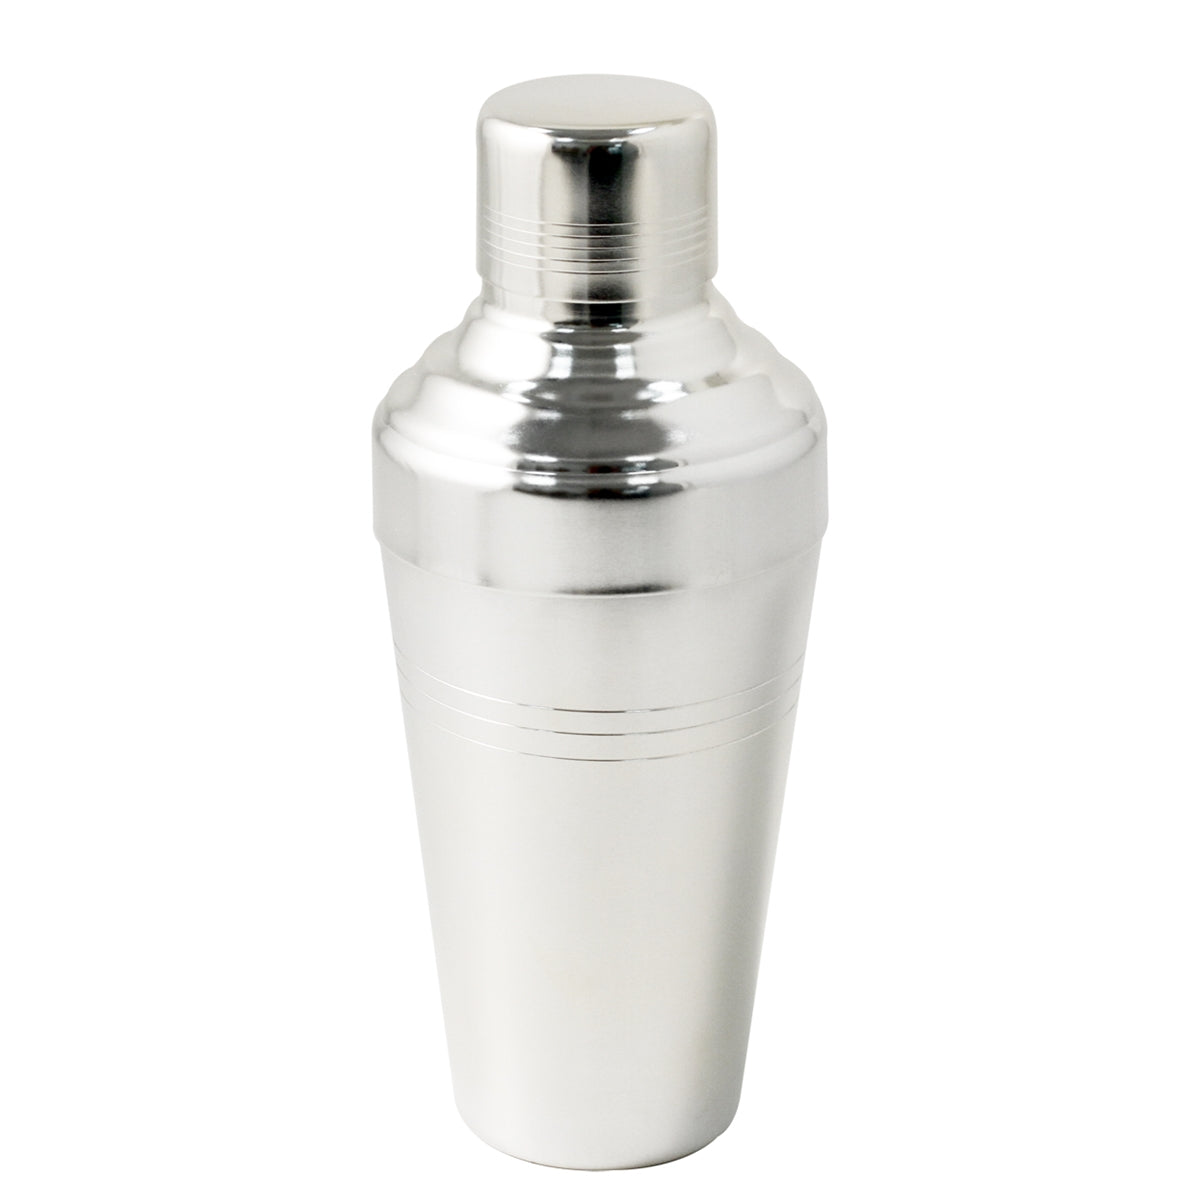 Yukiwa Matte Silver-Plated Baron 3-Piece Cocktail Shaker 410ml (13.8 oz)